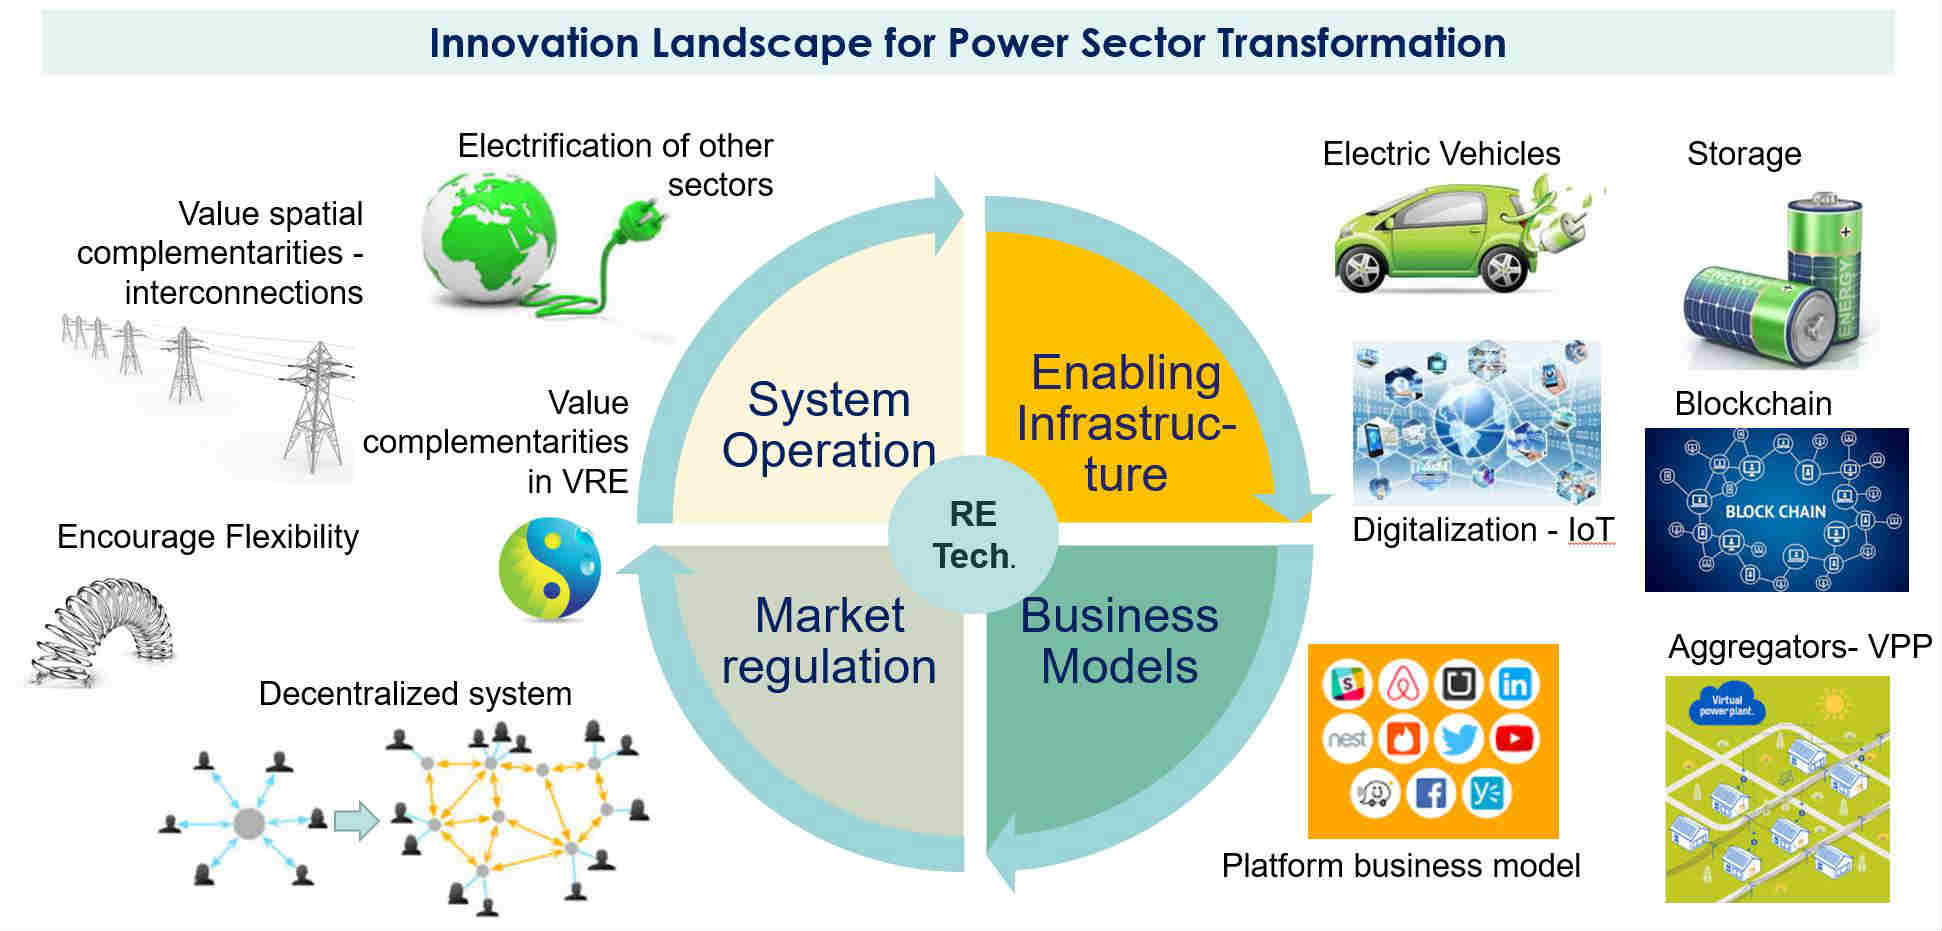 Building Innovation Networks To Transform The Energy Landscape